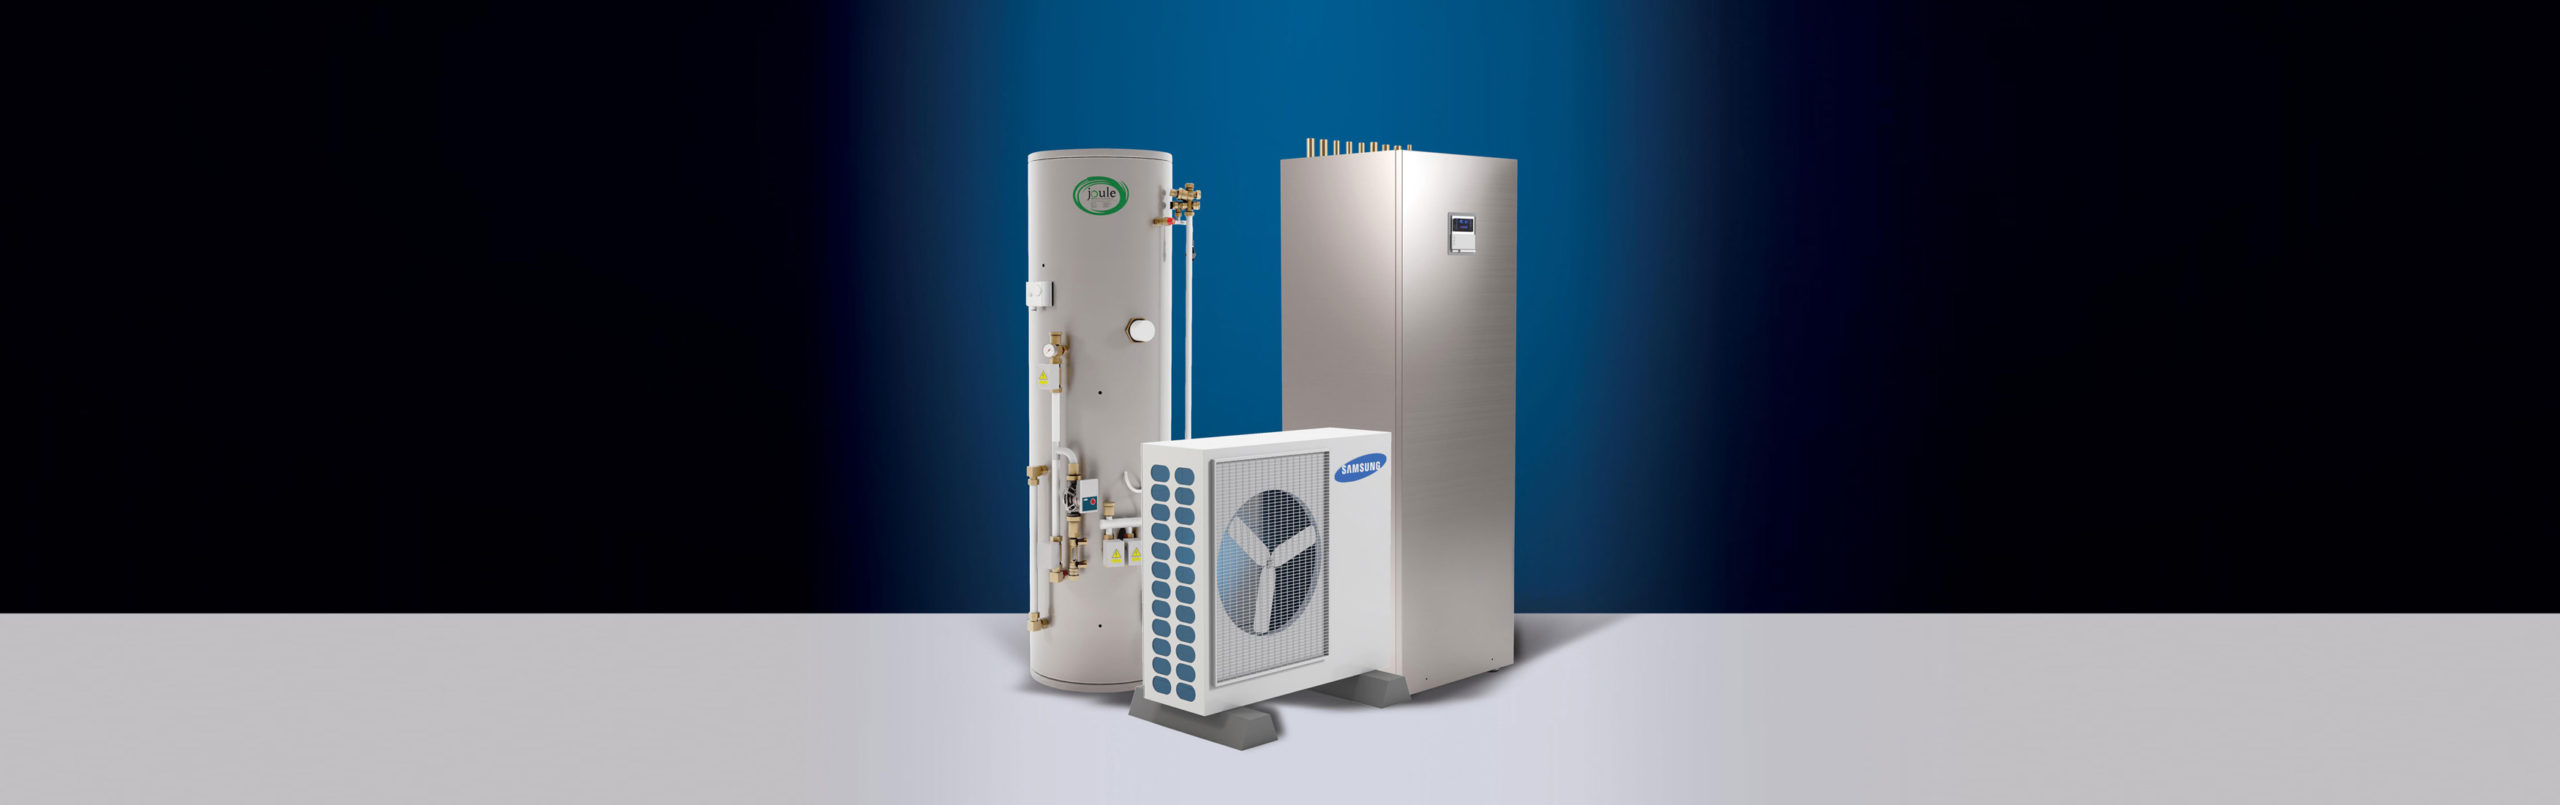 Heatpump Cylinder FridgeBackgroundWider scaled scaled